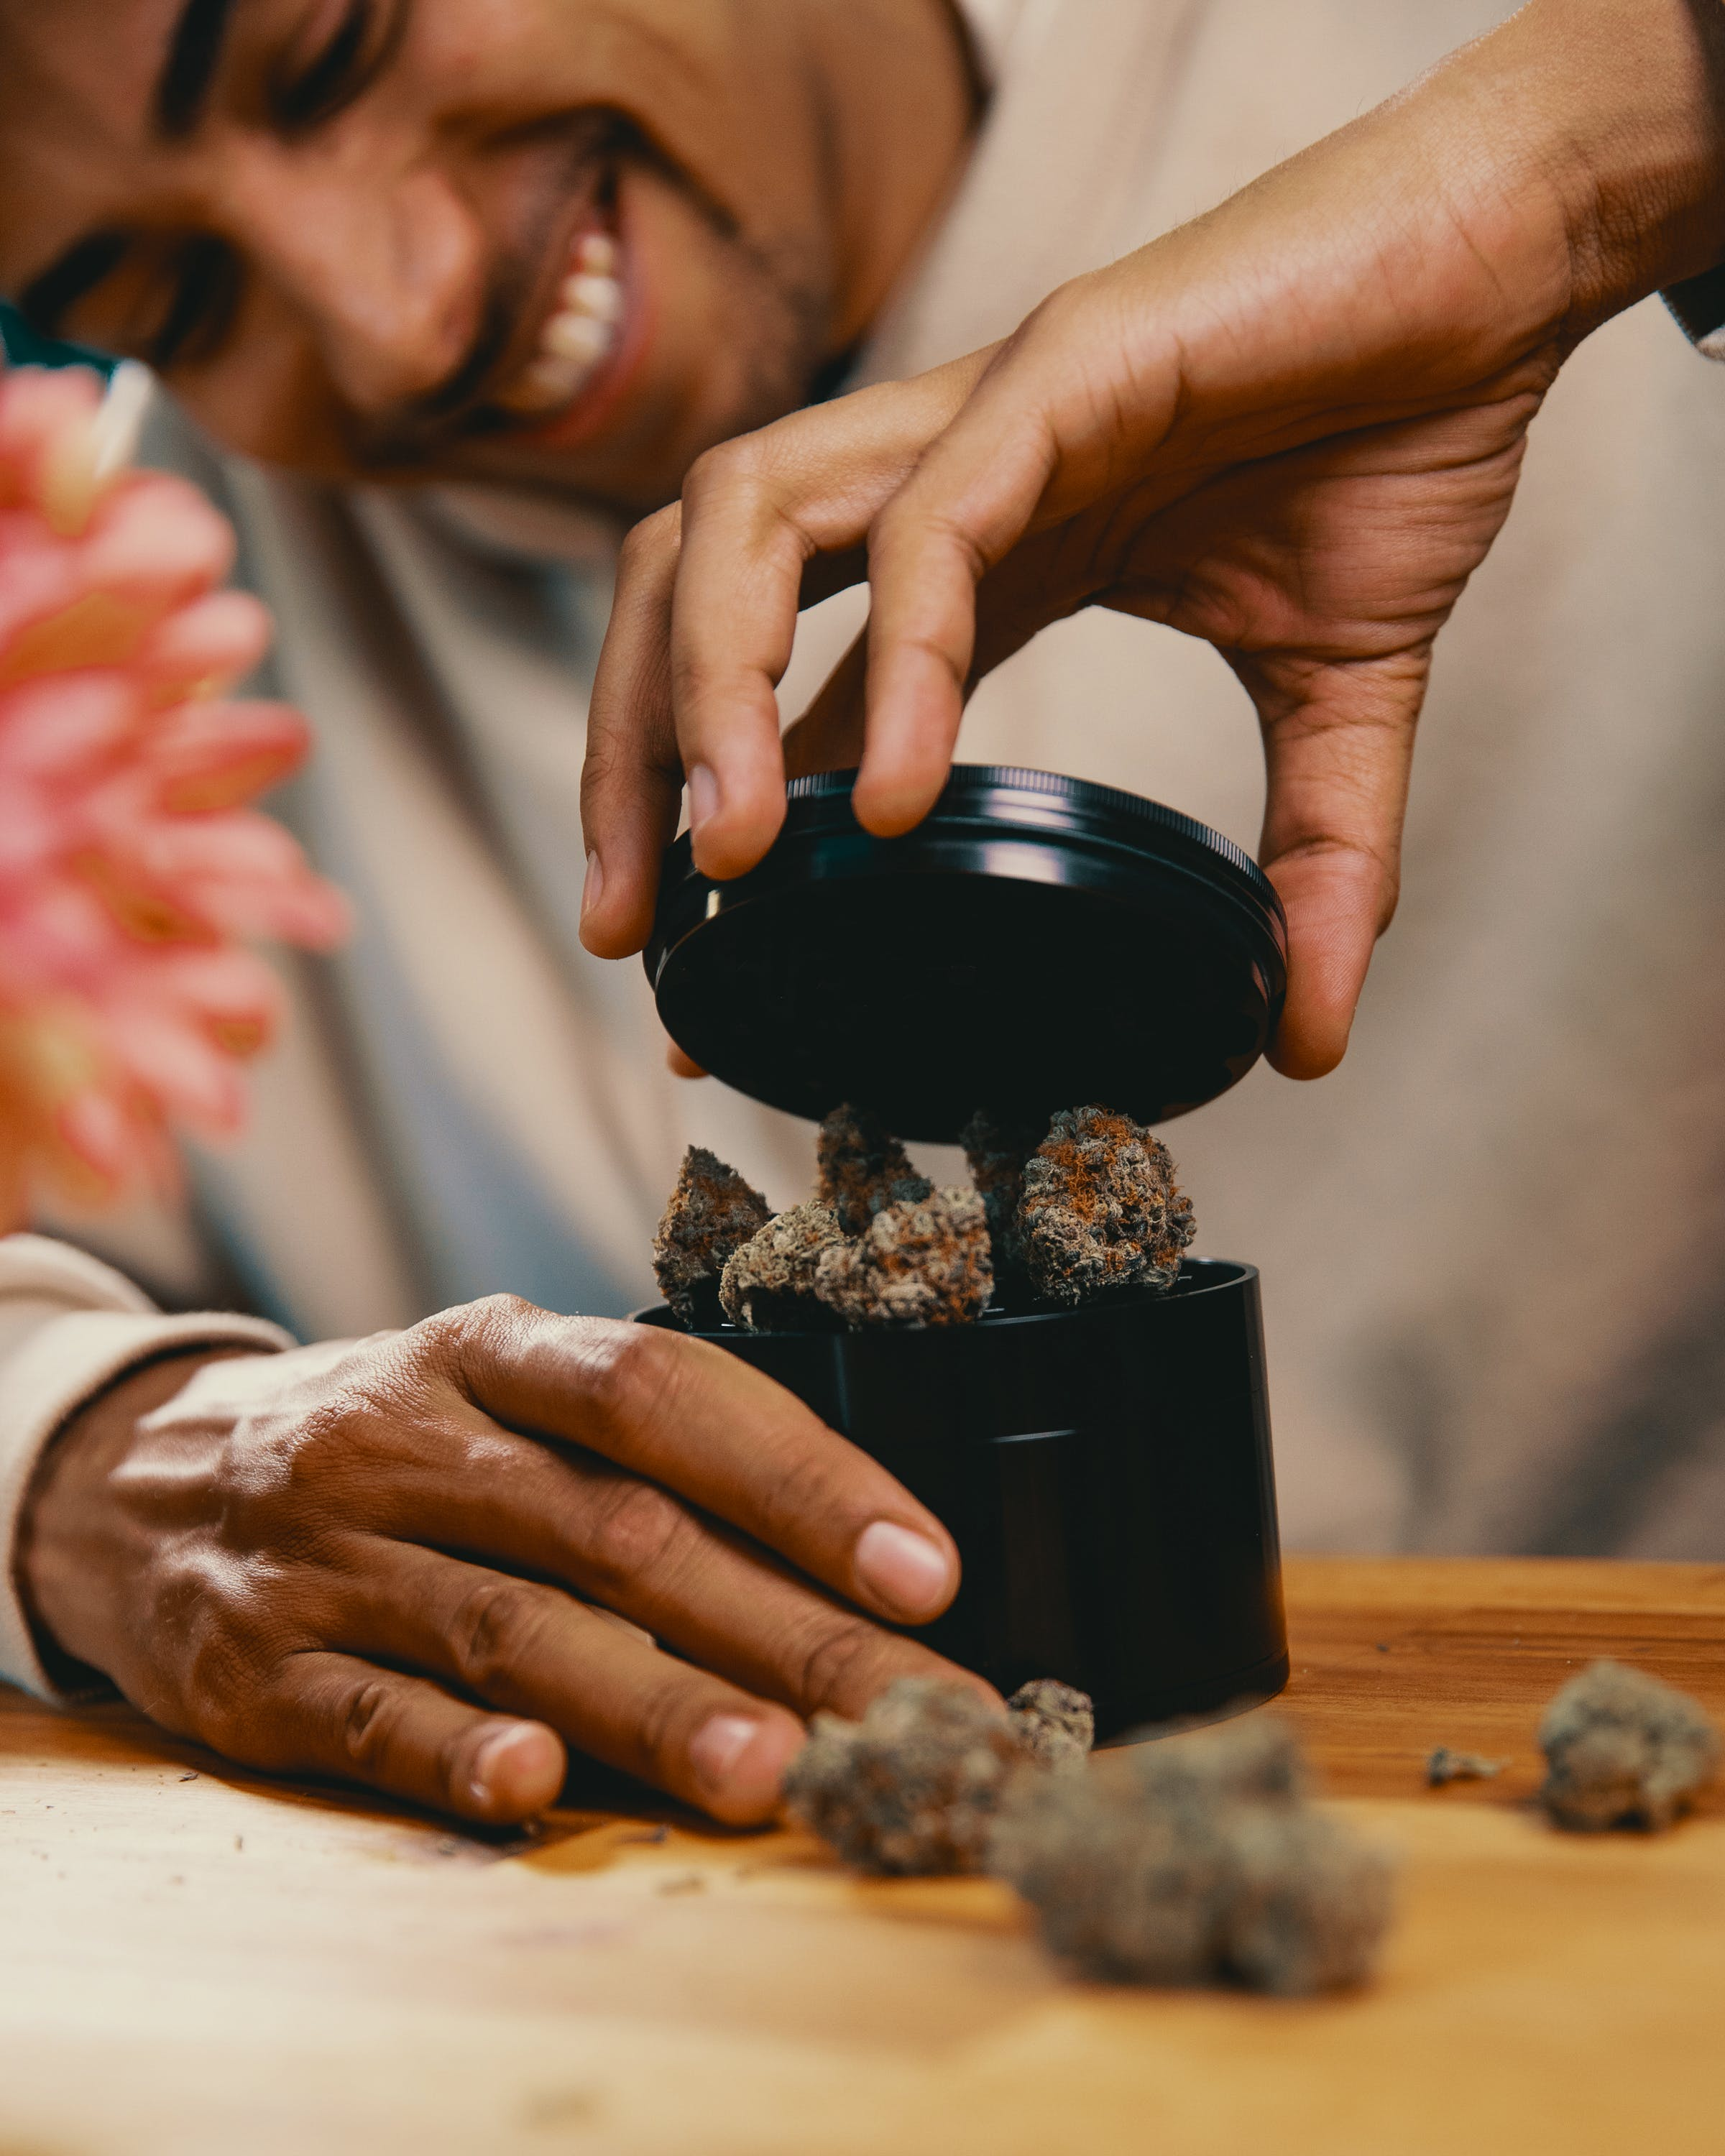 How To Get The Most Out Of Your Stash With The Best Weed Grinders 1 3 How to Get the Most Out Of Your Stash with the Best Weed Grinders